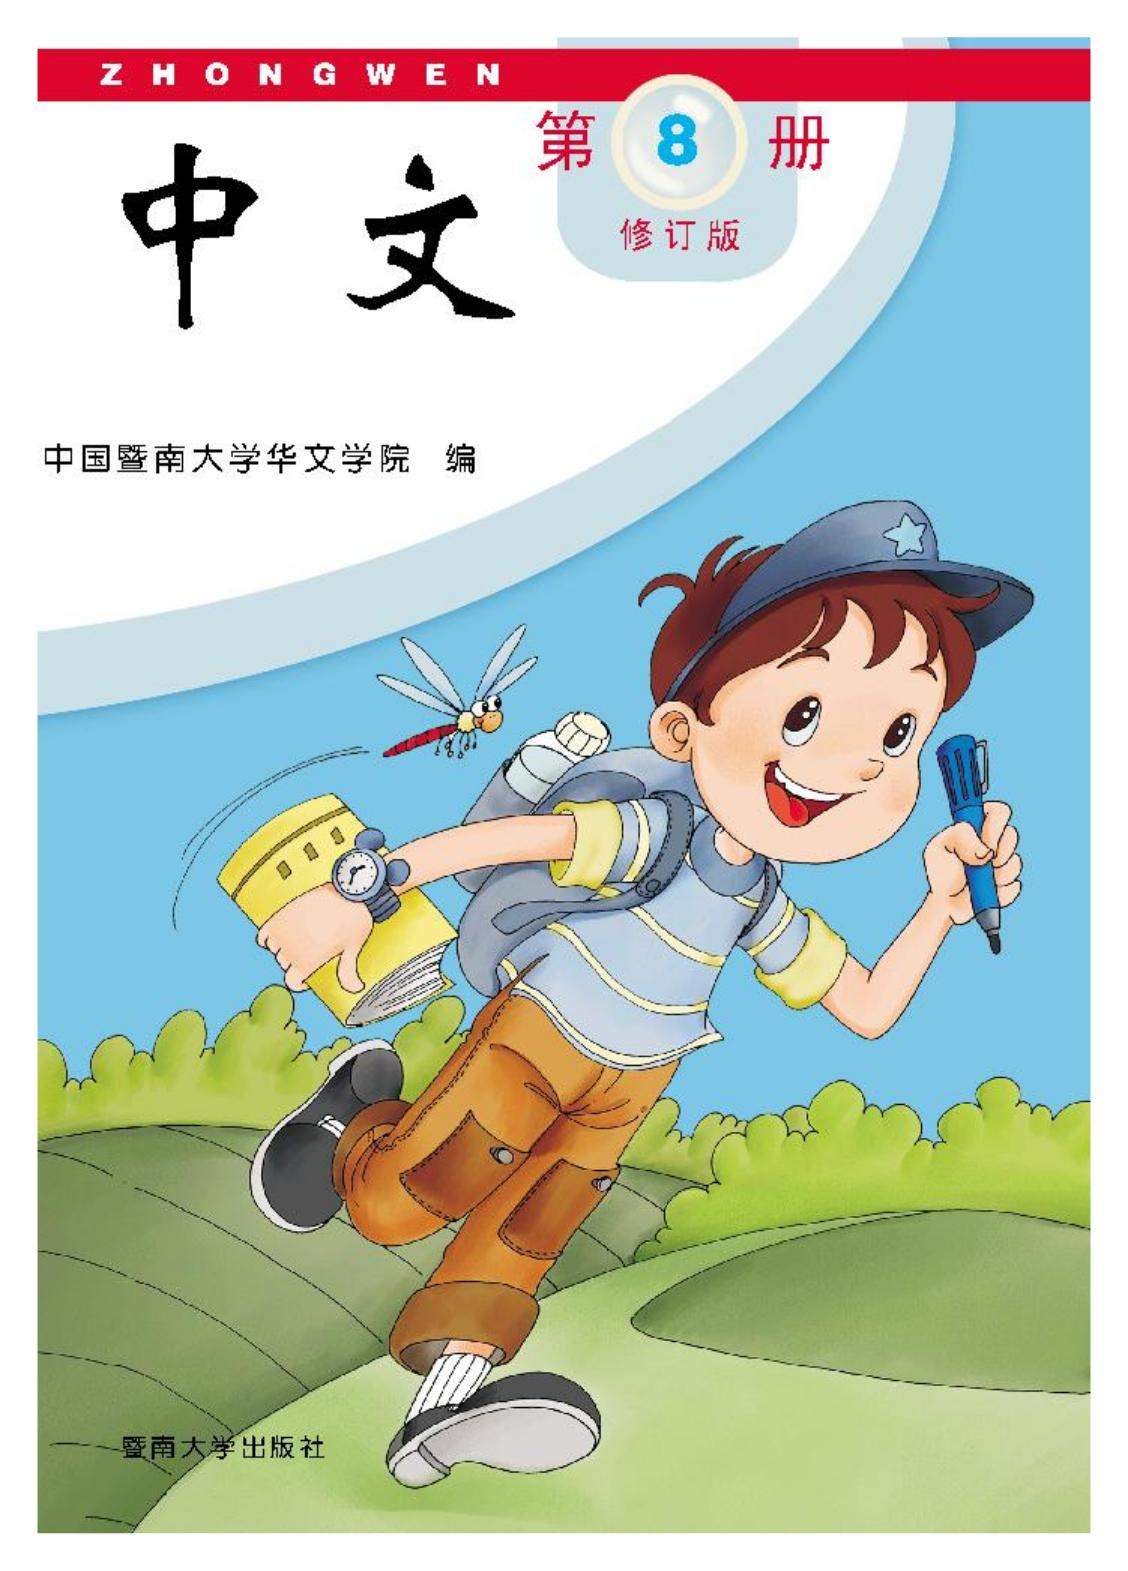 front cover of the textbook ZhongWen Revised Version Level 8